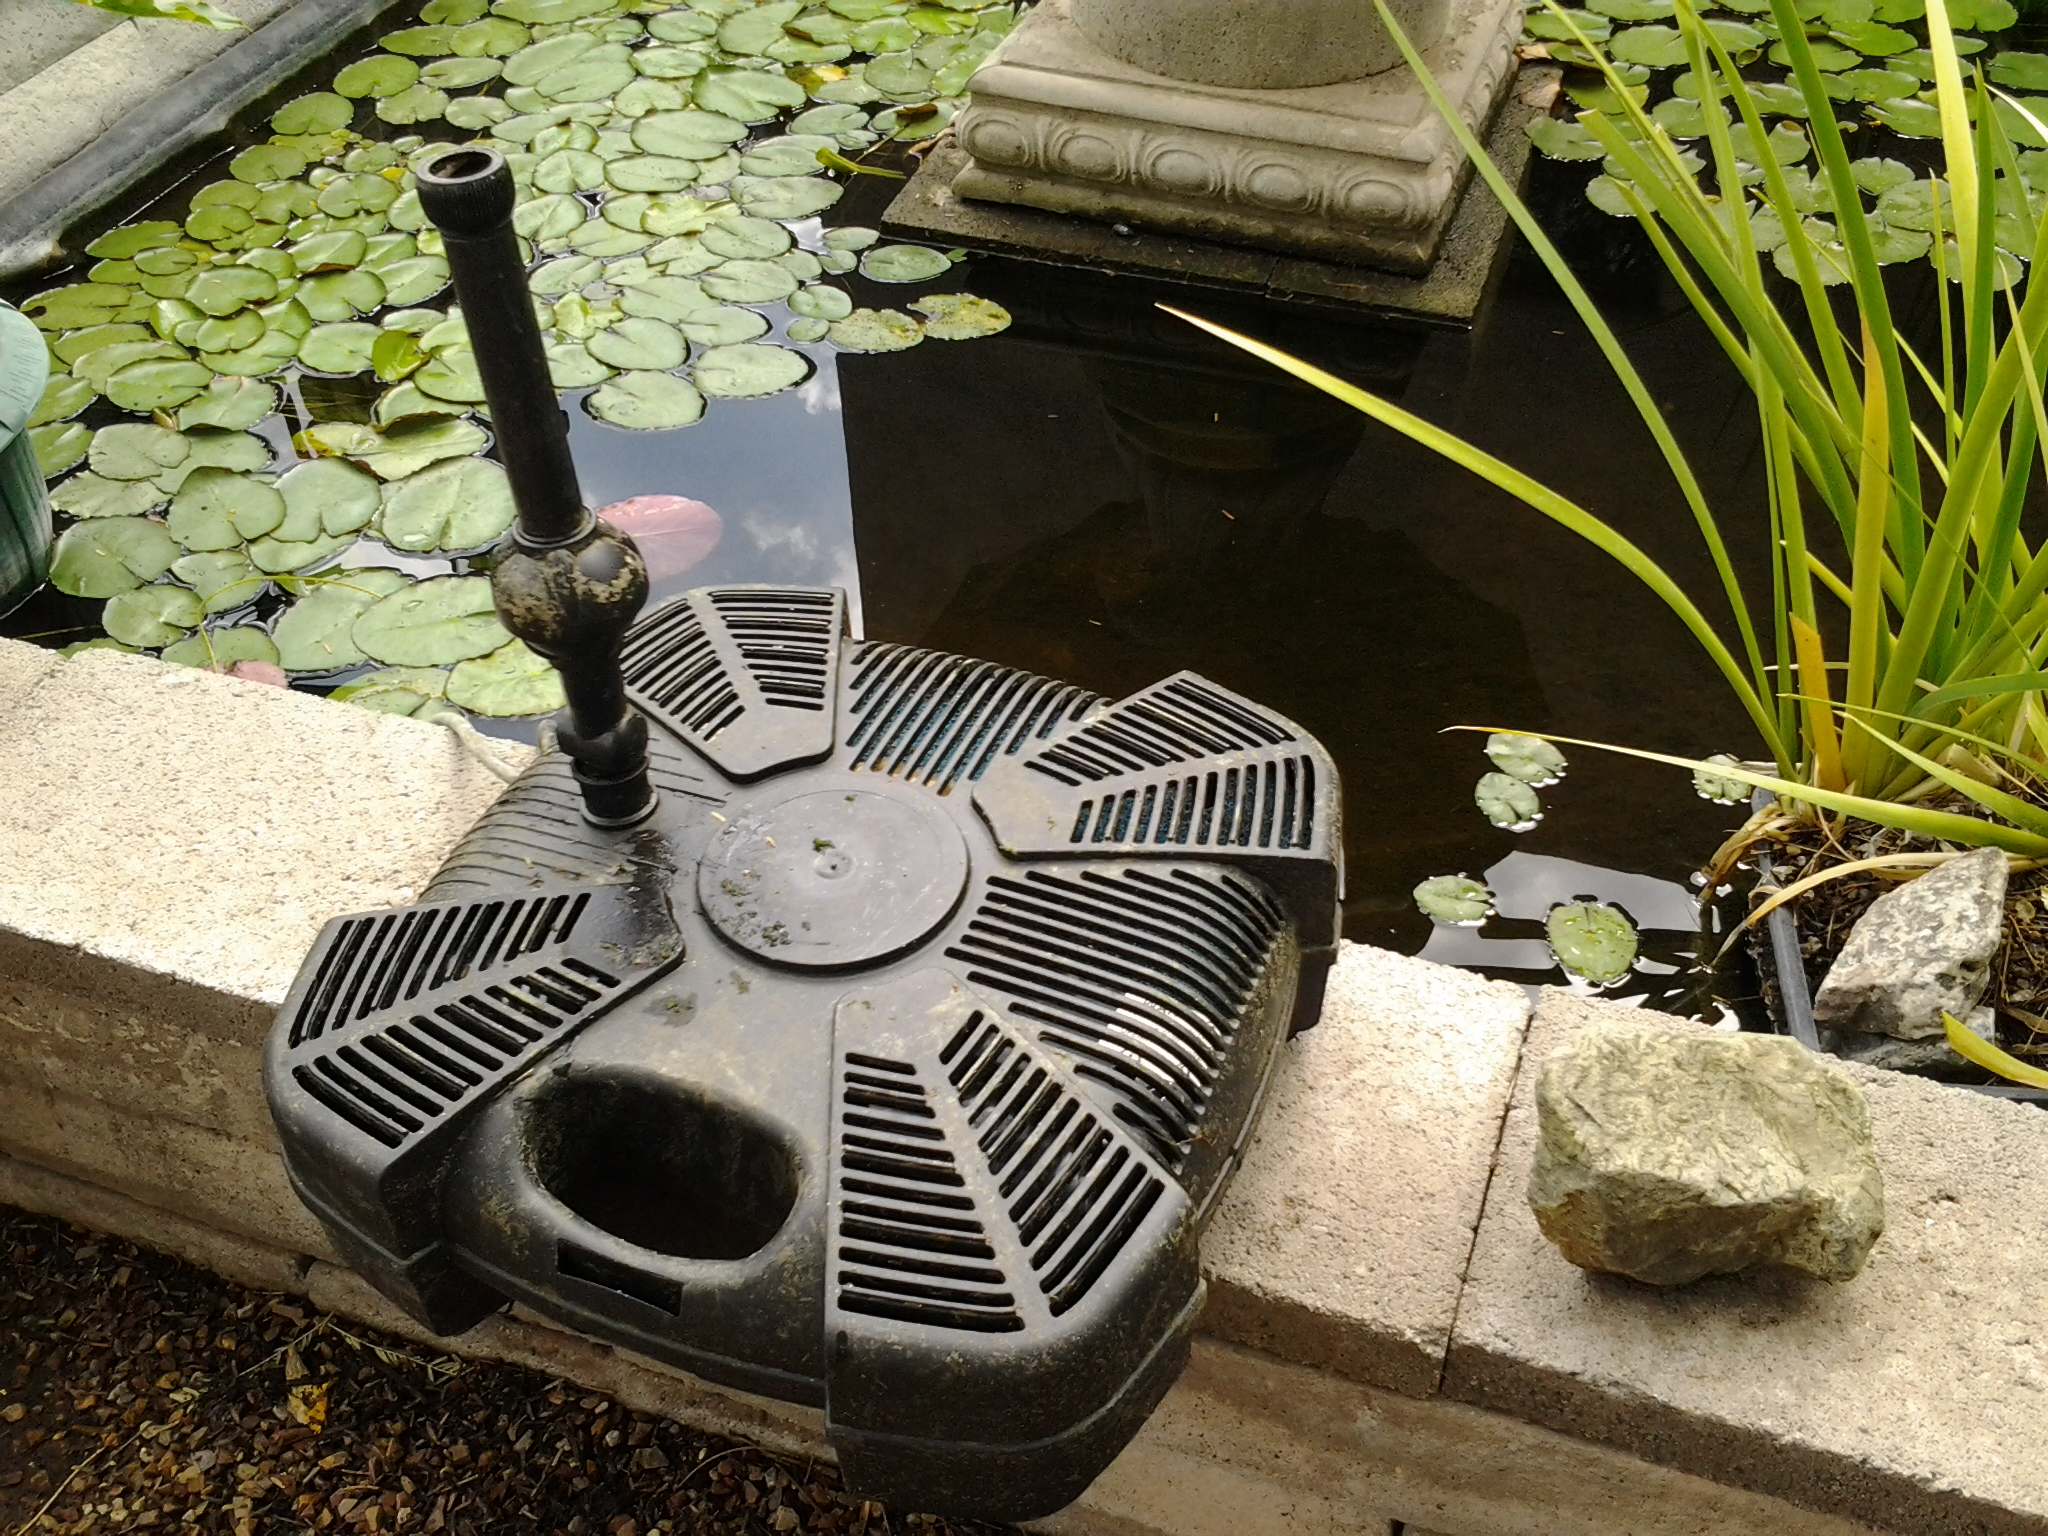 Best pond filter system all in one lifegard pump with uv for Small pond filter system